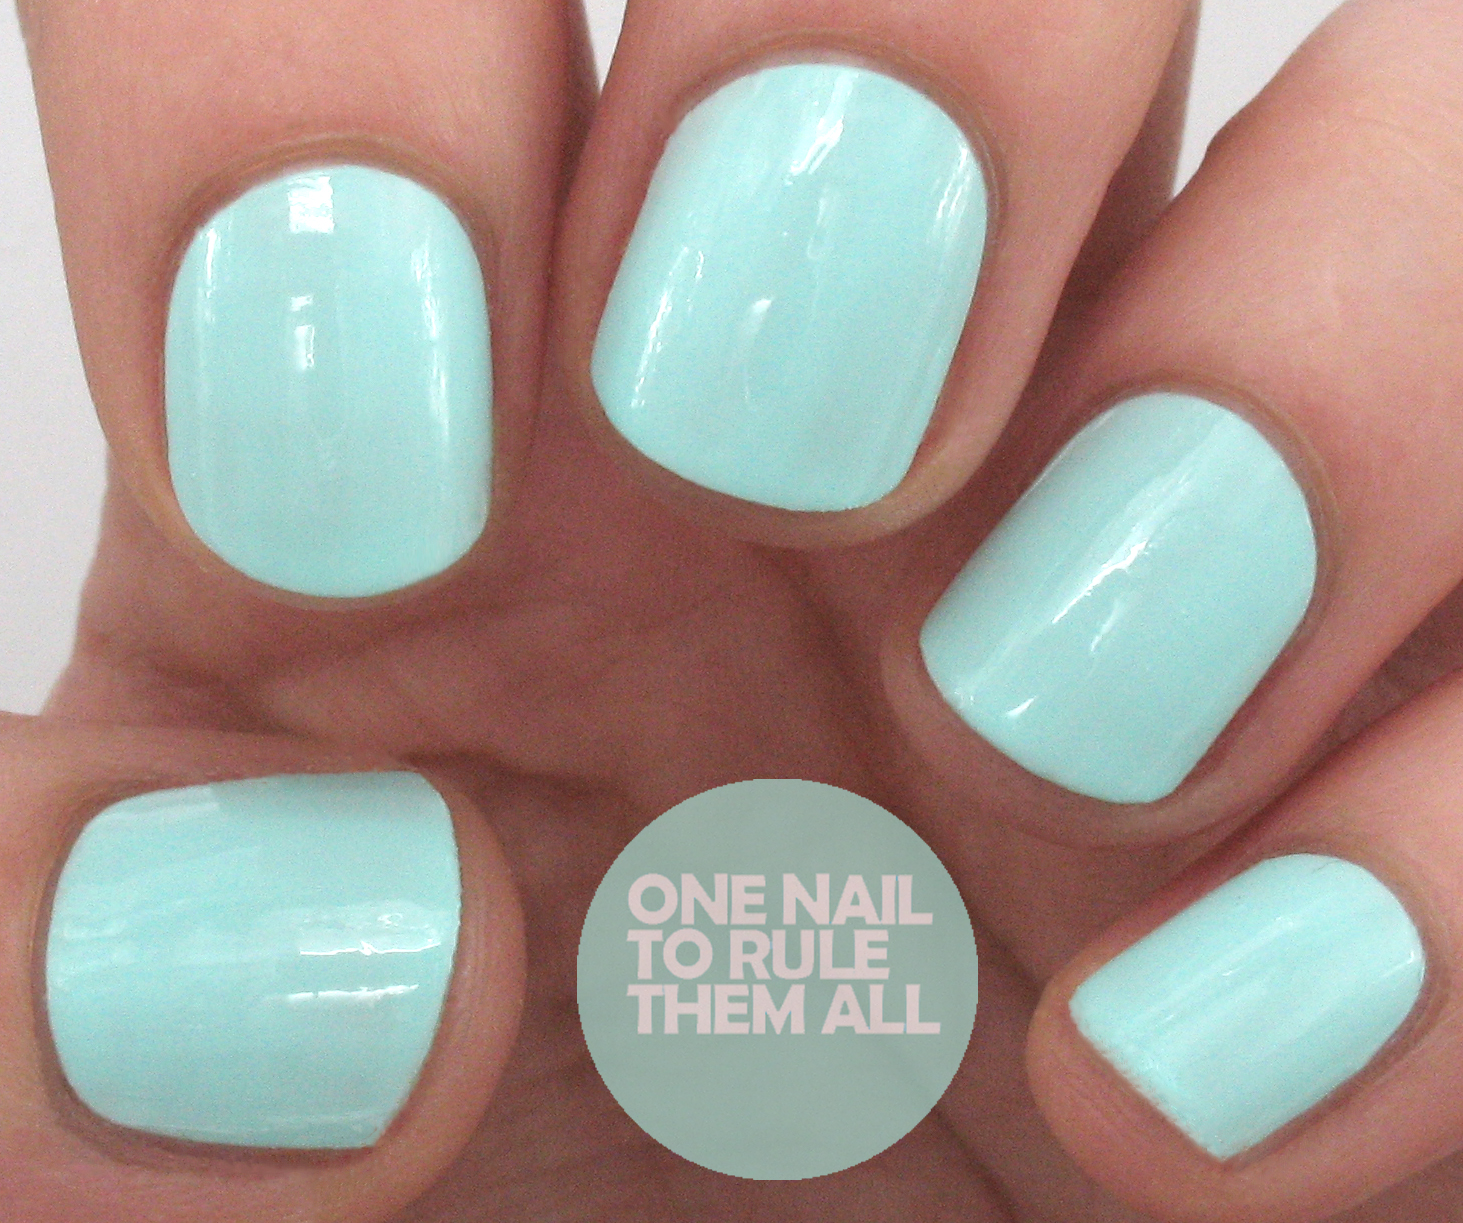 One Nail To Rule Them All Barry M Nail Art Pens Review: One Nail To Rule Them All: Barry M Spring 2014 Gelly Hi